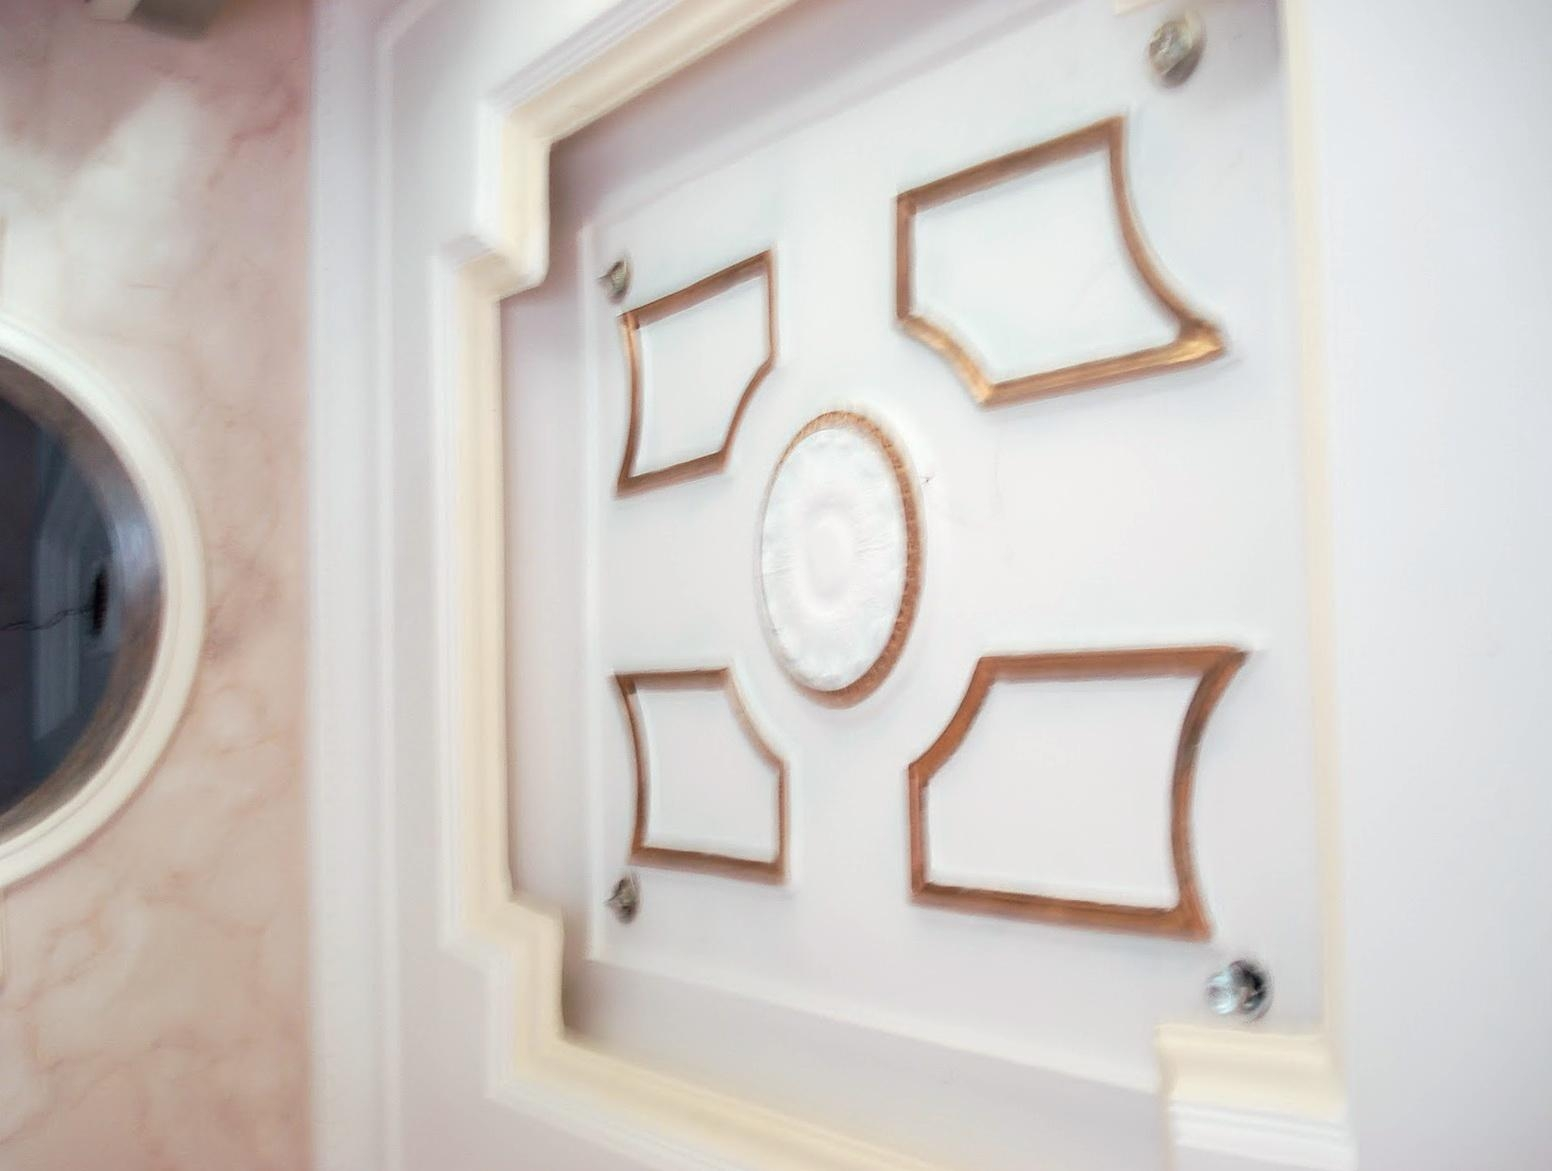 Plaster Of Paris Wall Designs In Cozy Popular Attachment Inside Parisian Wall Art (View 17 of 20)